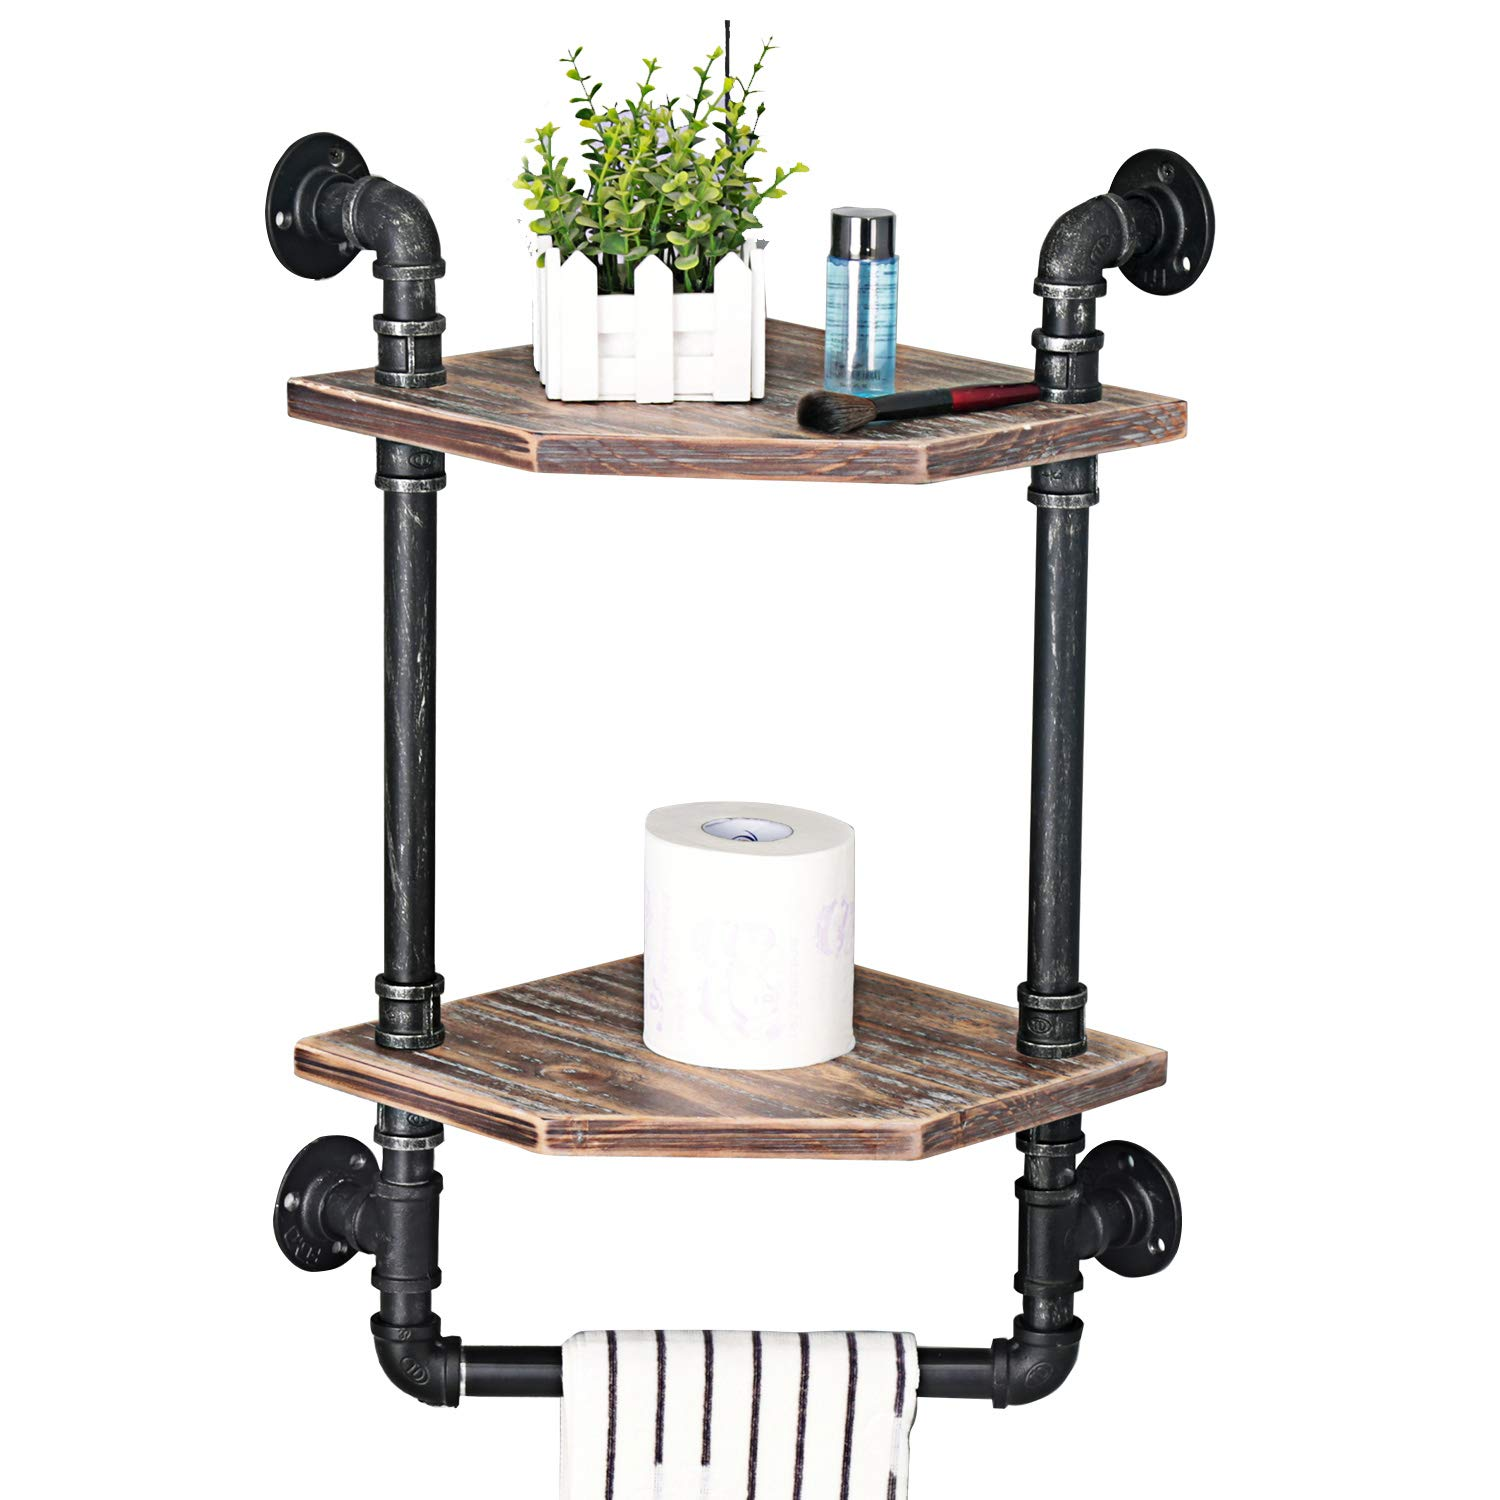 MBQQ Industrial Pipe Shelf,Rustic Corner Shelves with Towel Bar,Bathroom Shelves Wall Mounted,2 Tiered Metal&Real Wood Home Decor Floating Shelves